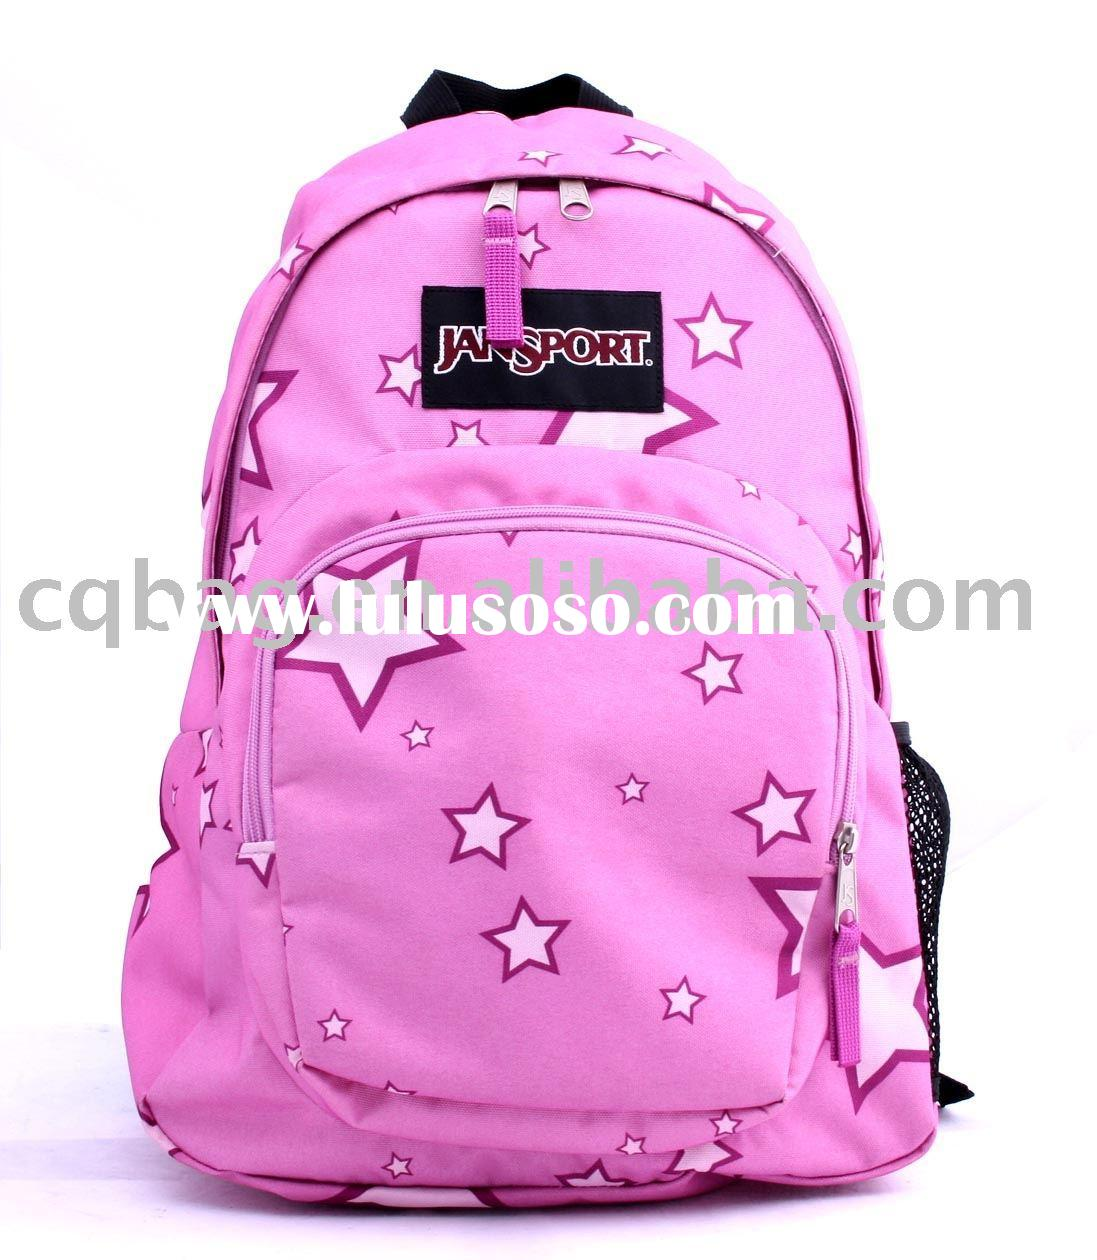 JANSPORT pink sports backpack